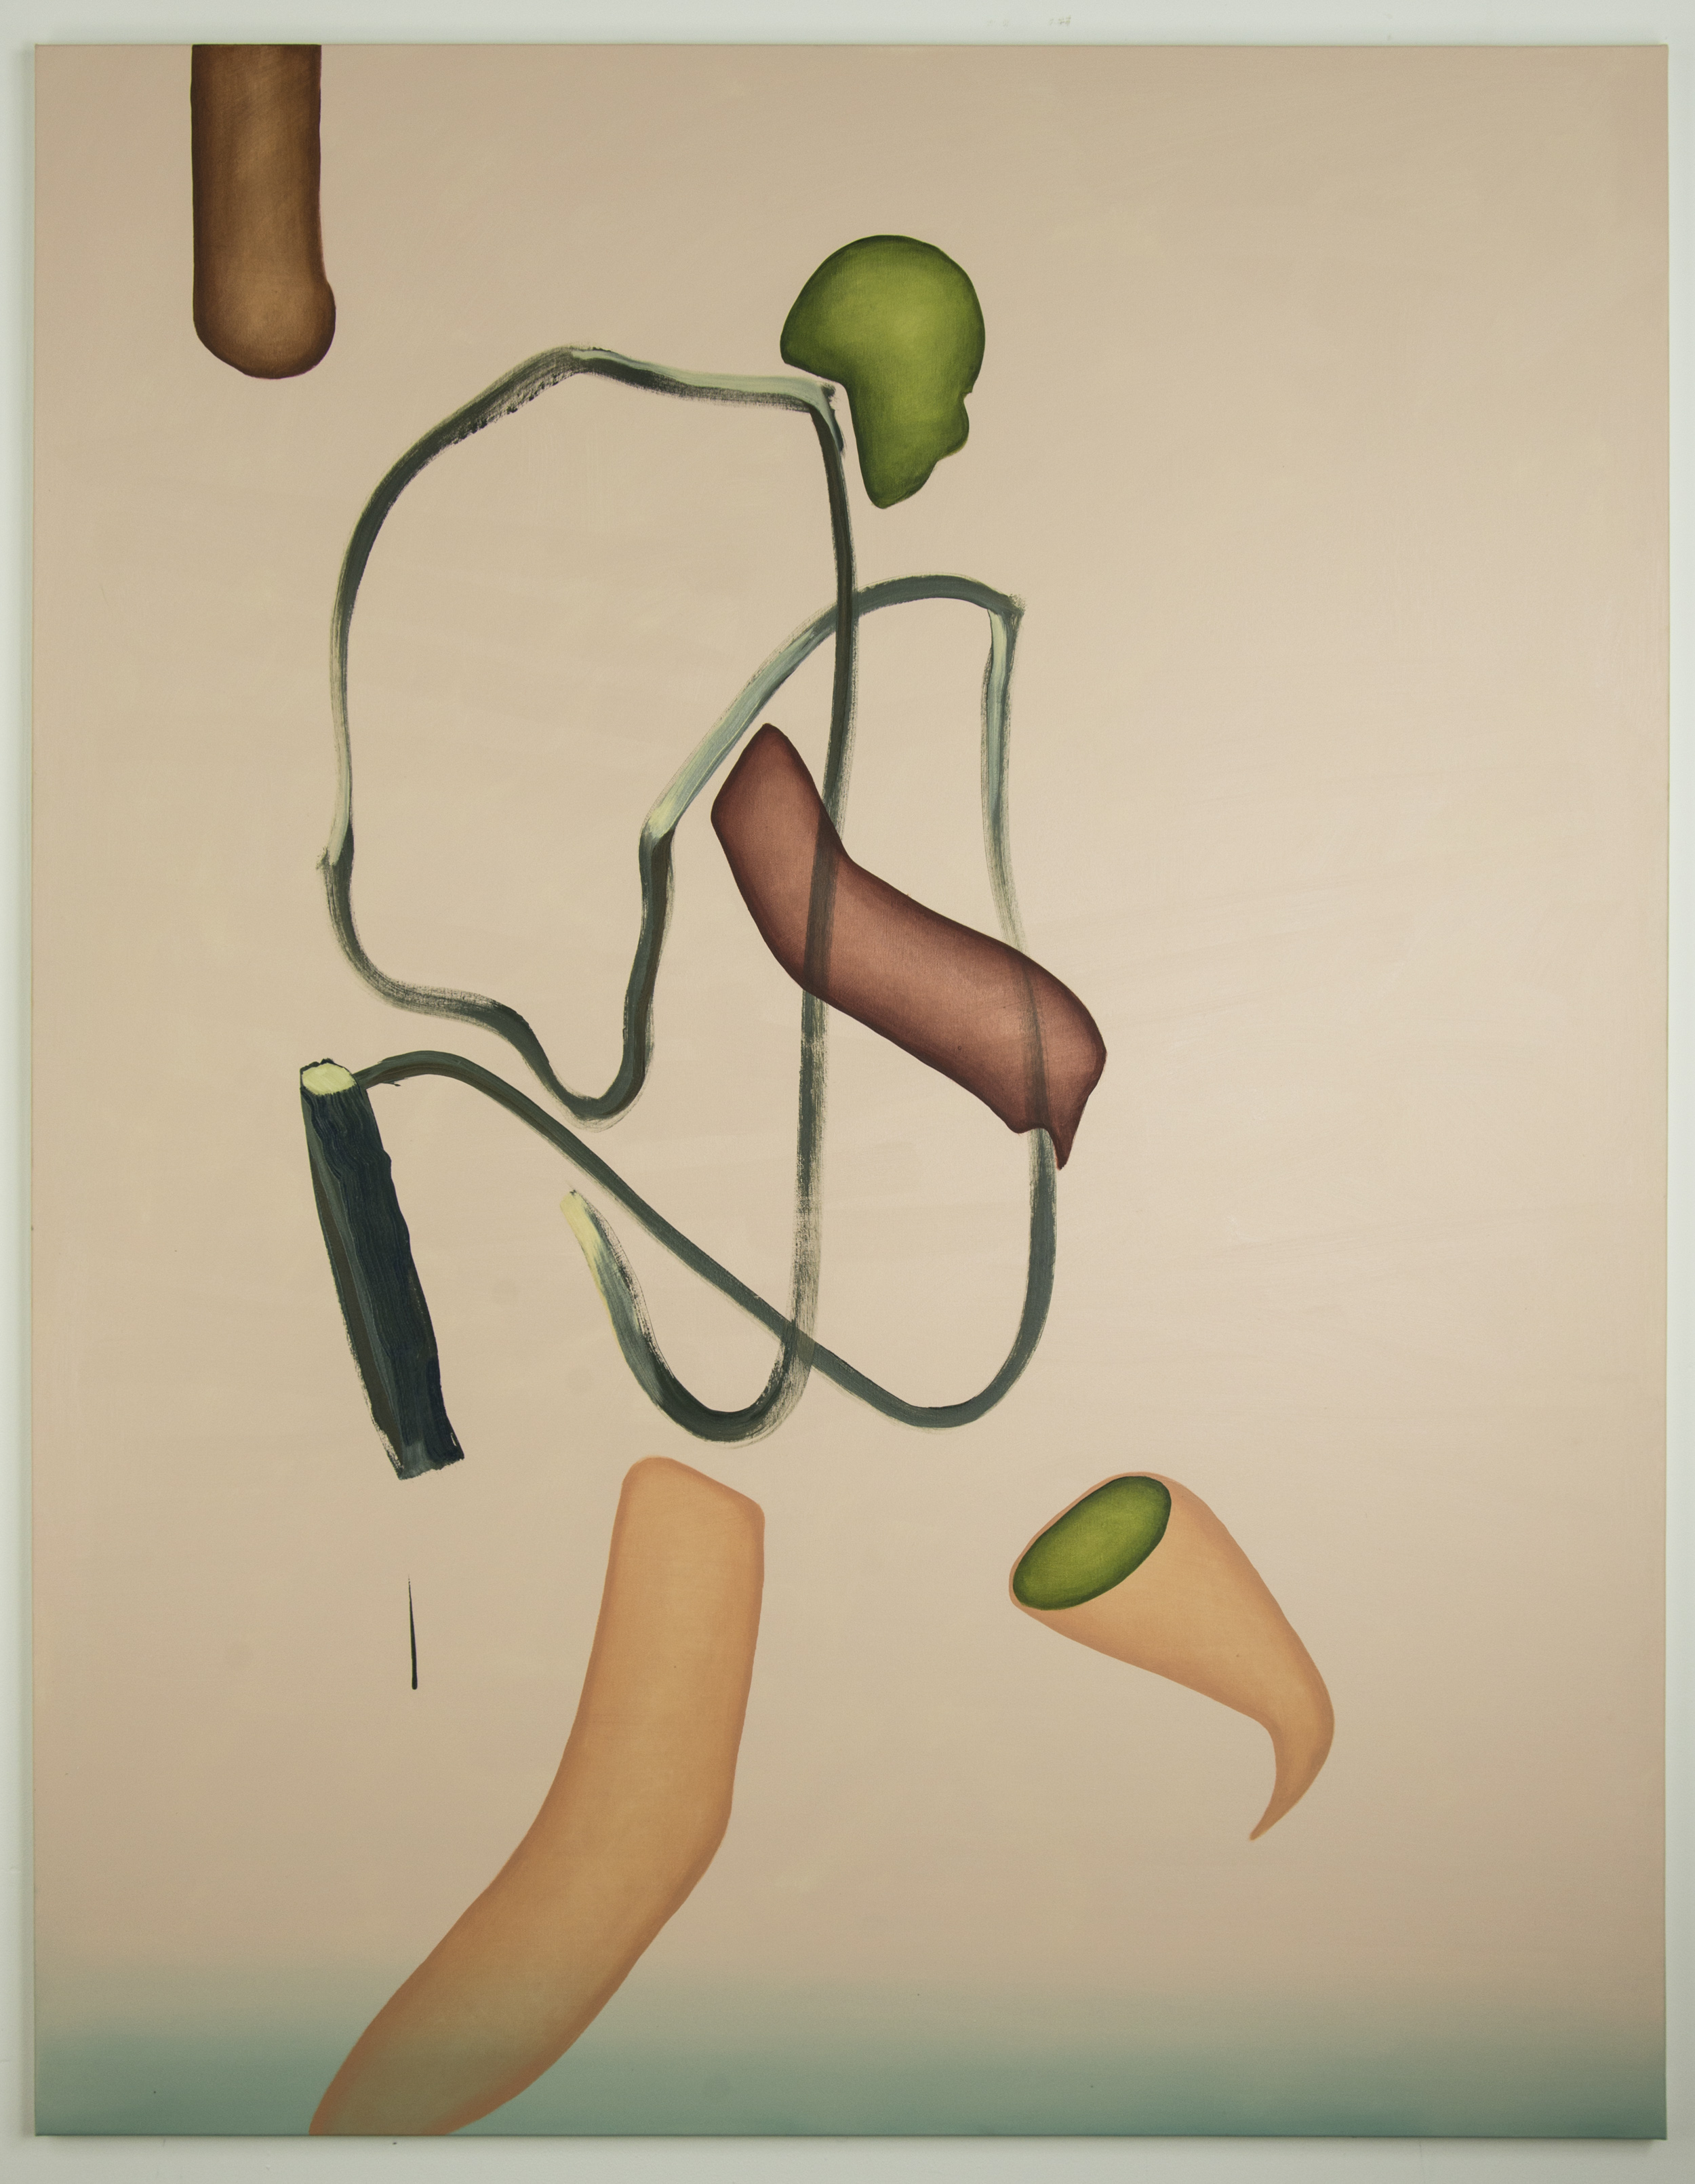 Simple Game, 2016, oil on canvas, 180 x 140 cm